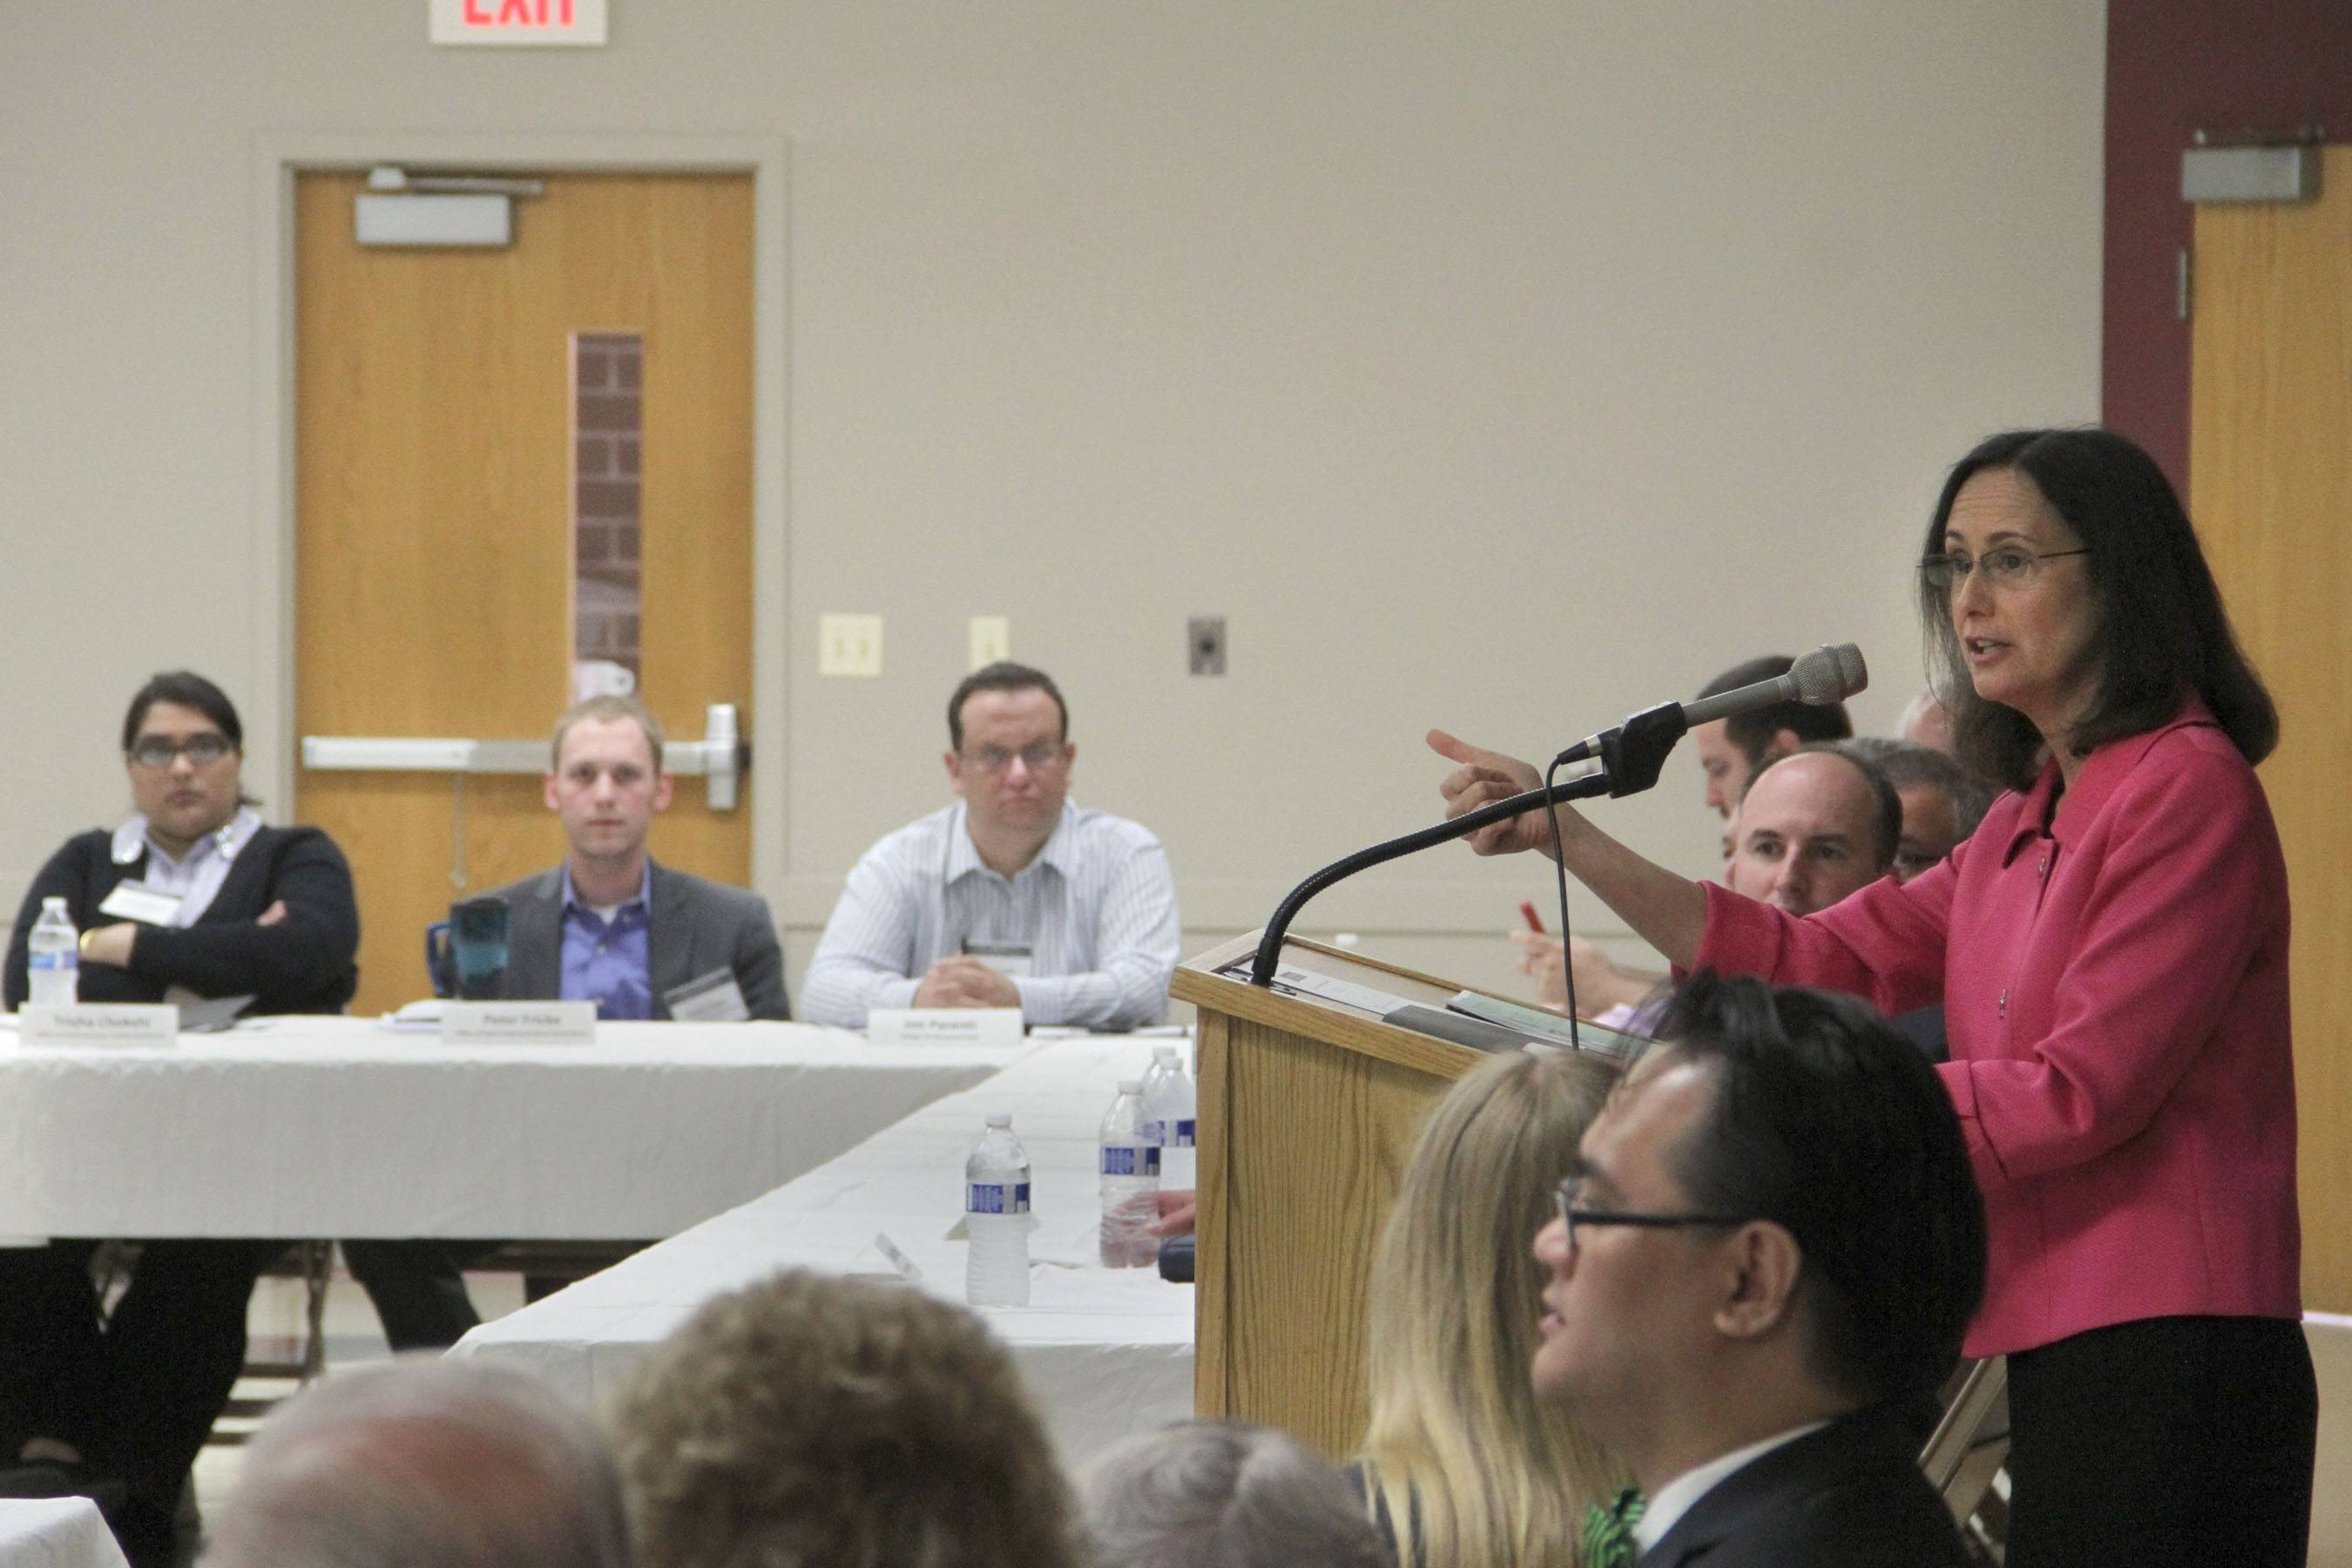 Illinois Attorney General Lisa Madigan provided tips on preventing identity theft during a consumer round-table Tuesday in Des Plaines. About 50 representatives from suburban law enforcement, senior organizations and civic groups attended the event.